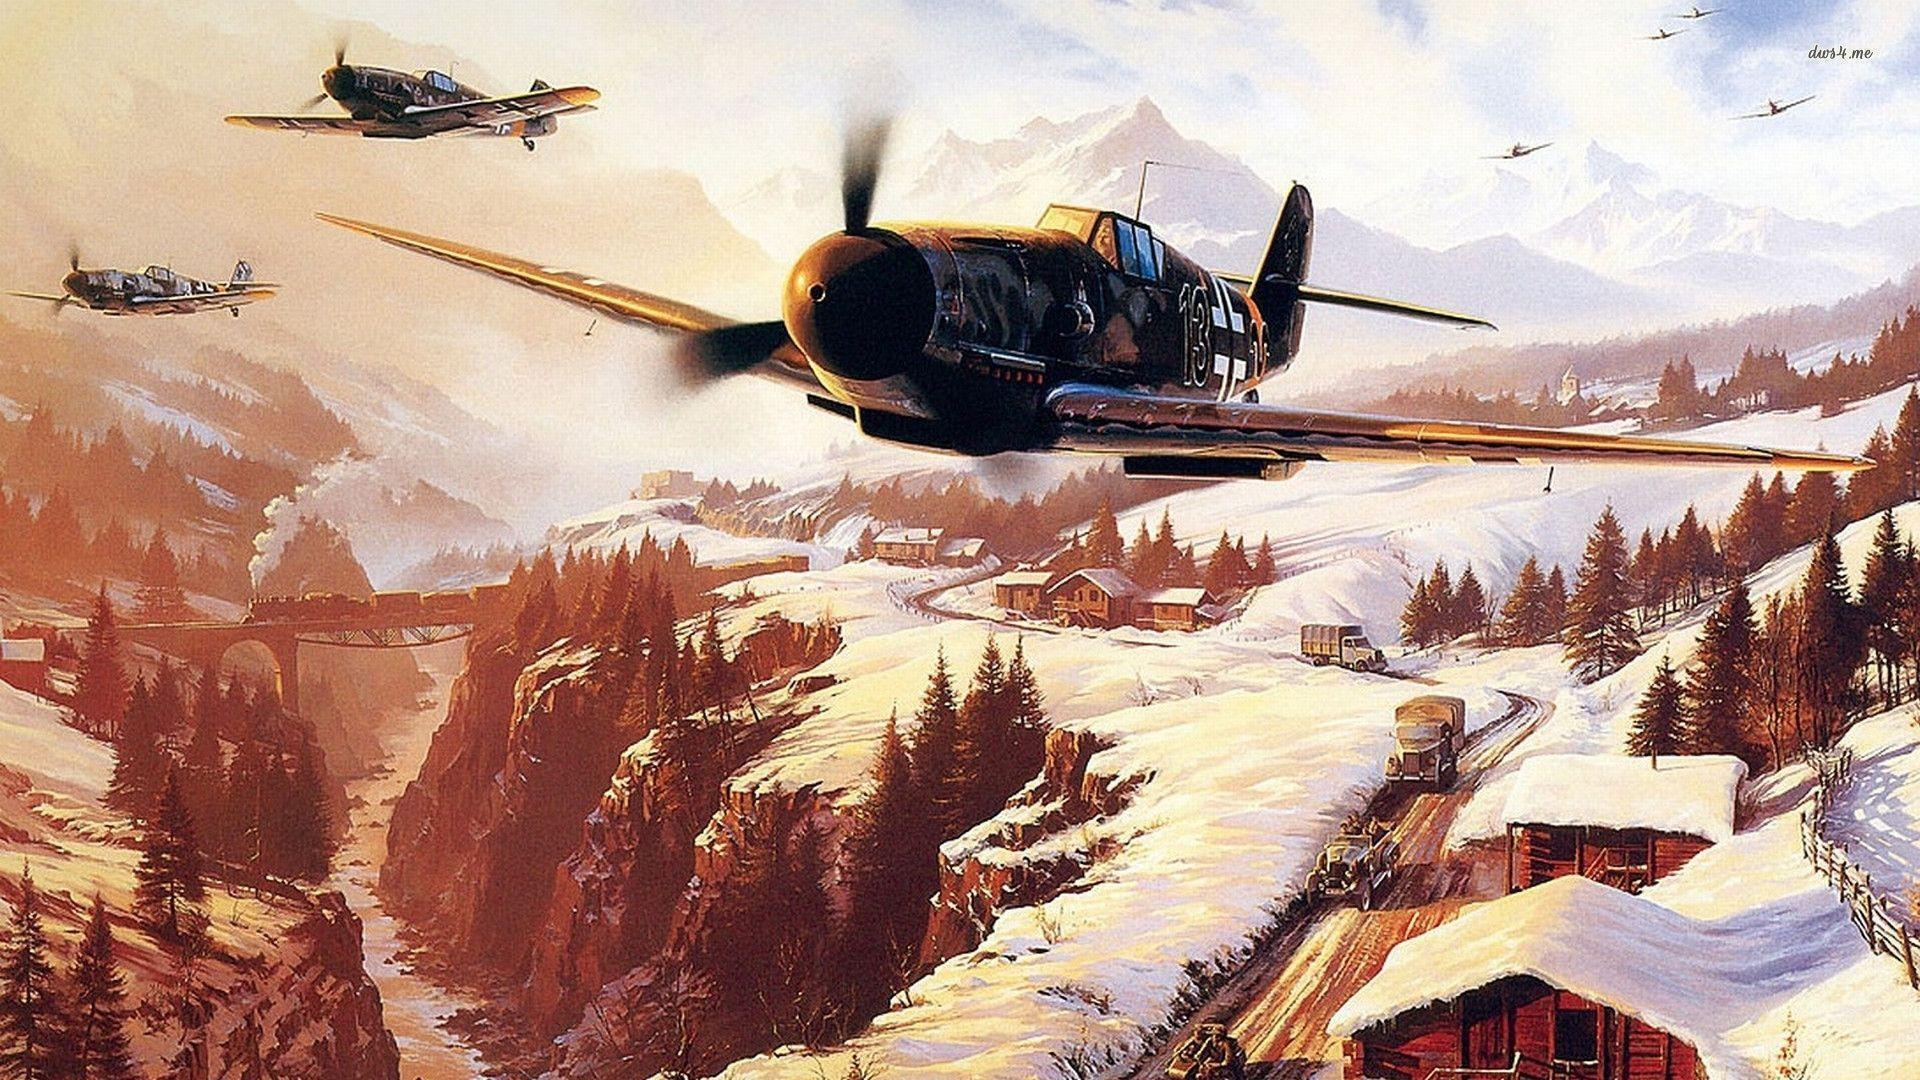 Wallpapers For > Ww2 Plane Wallpapers